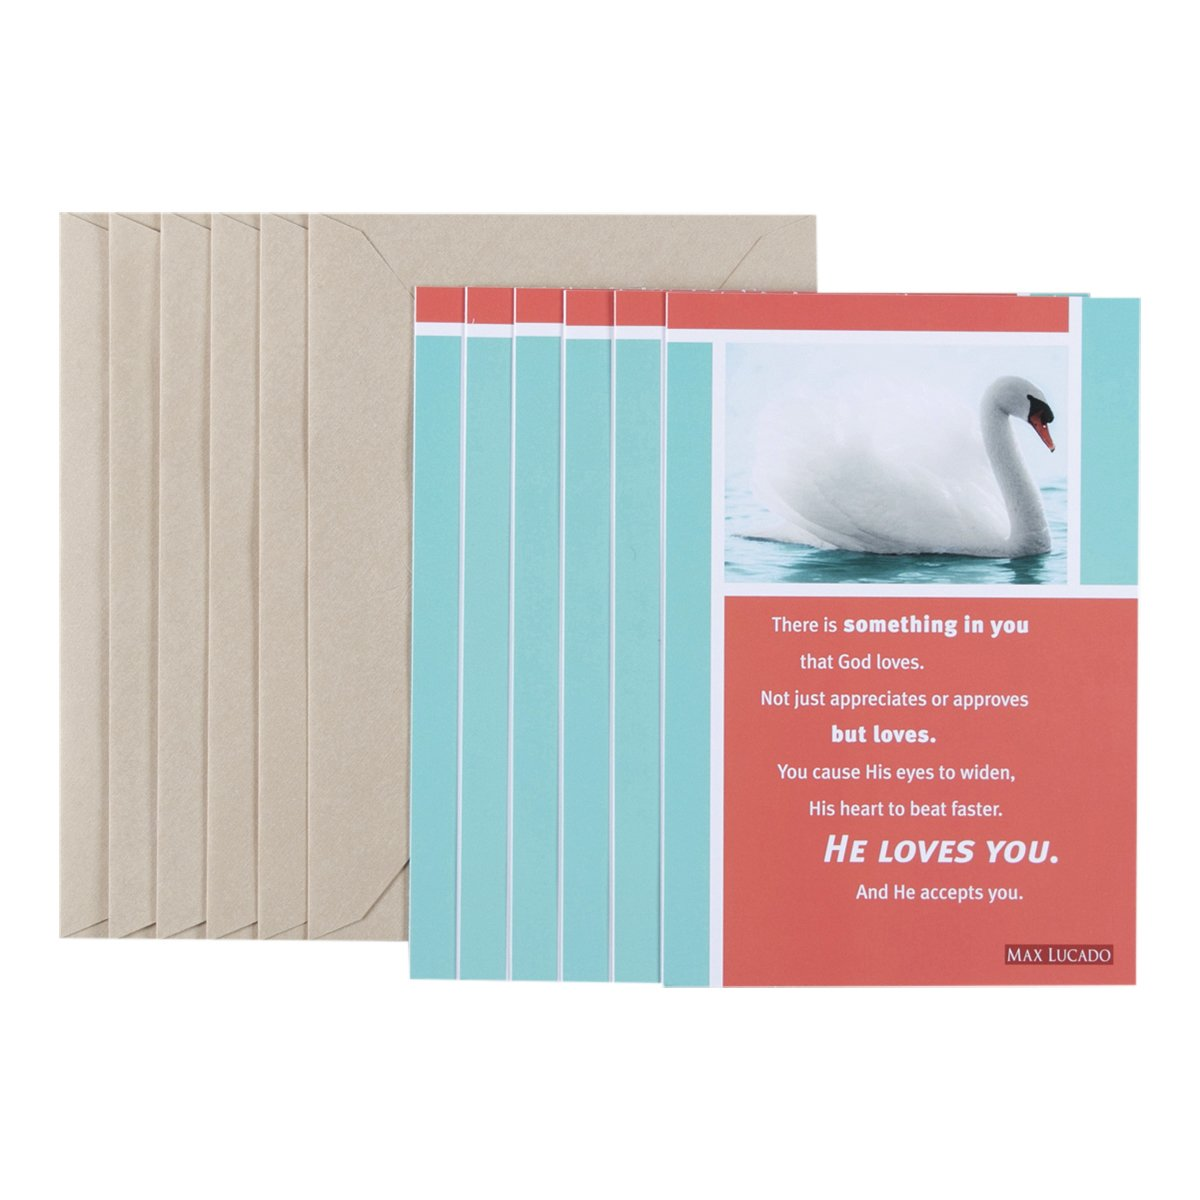 Amazon birthday inspirational card pack max lucado swan amazon birthday inspirational card pack max lucado swan 6 count office products kristyandbryce Choice Image